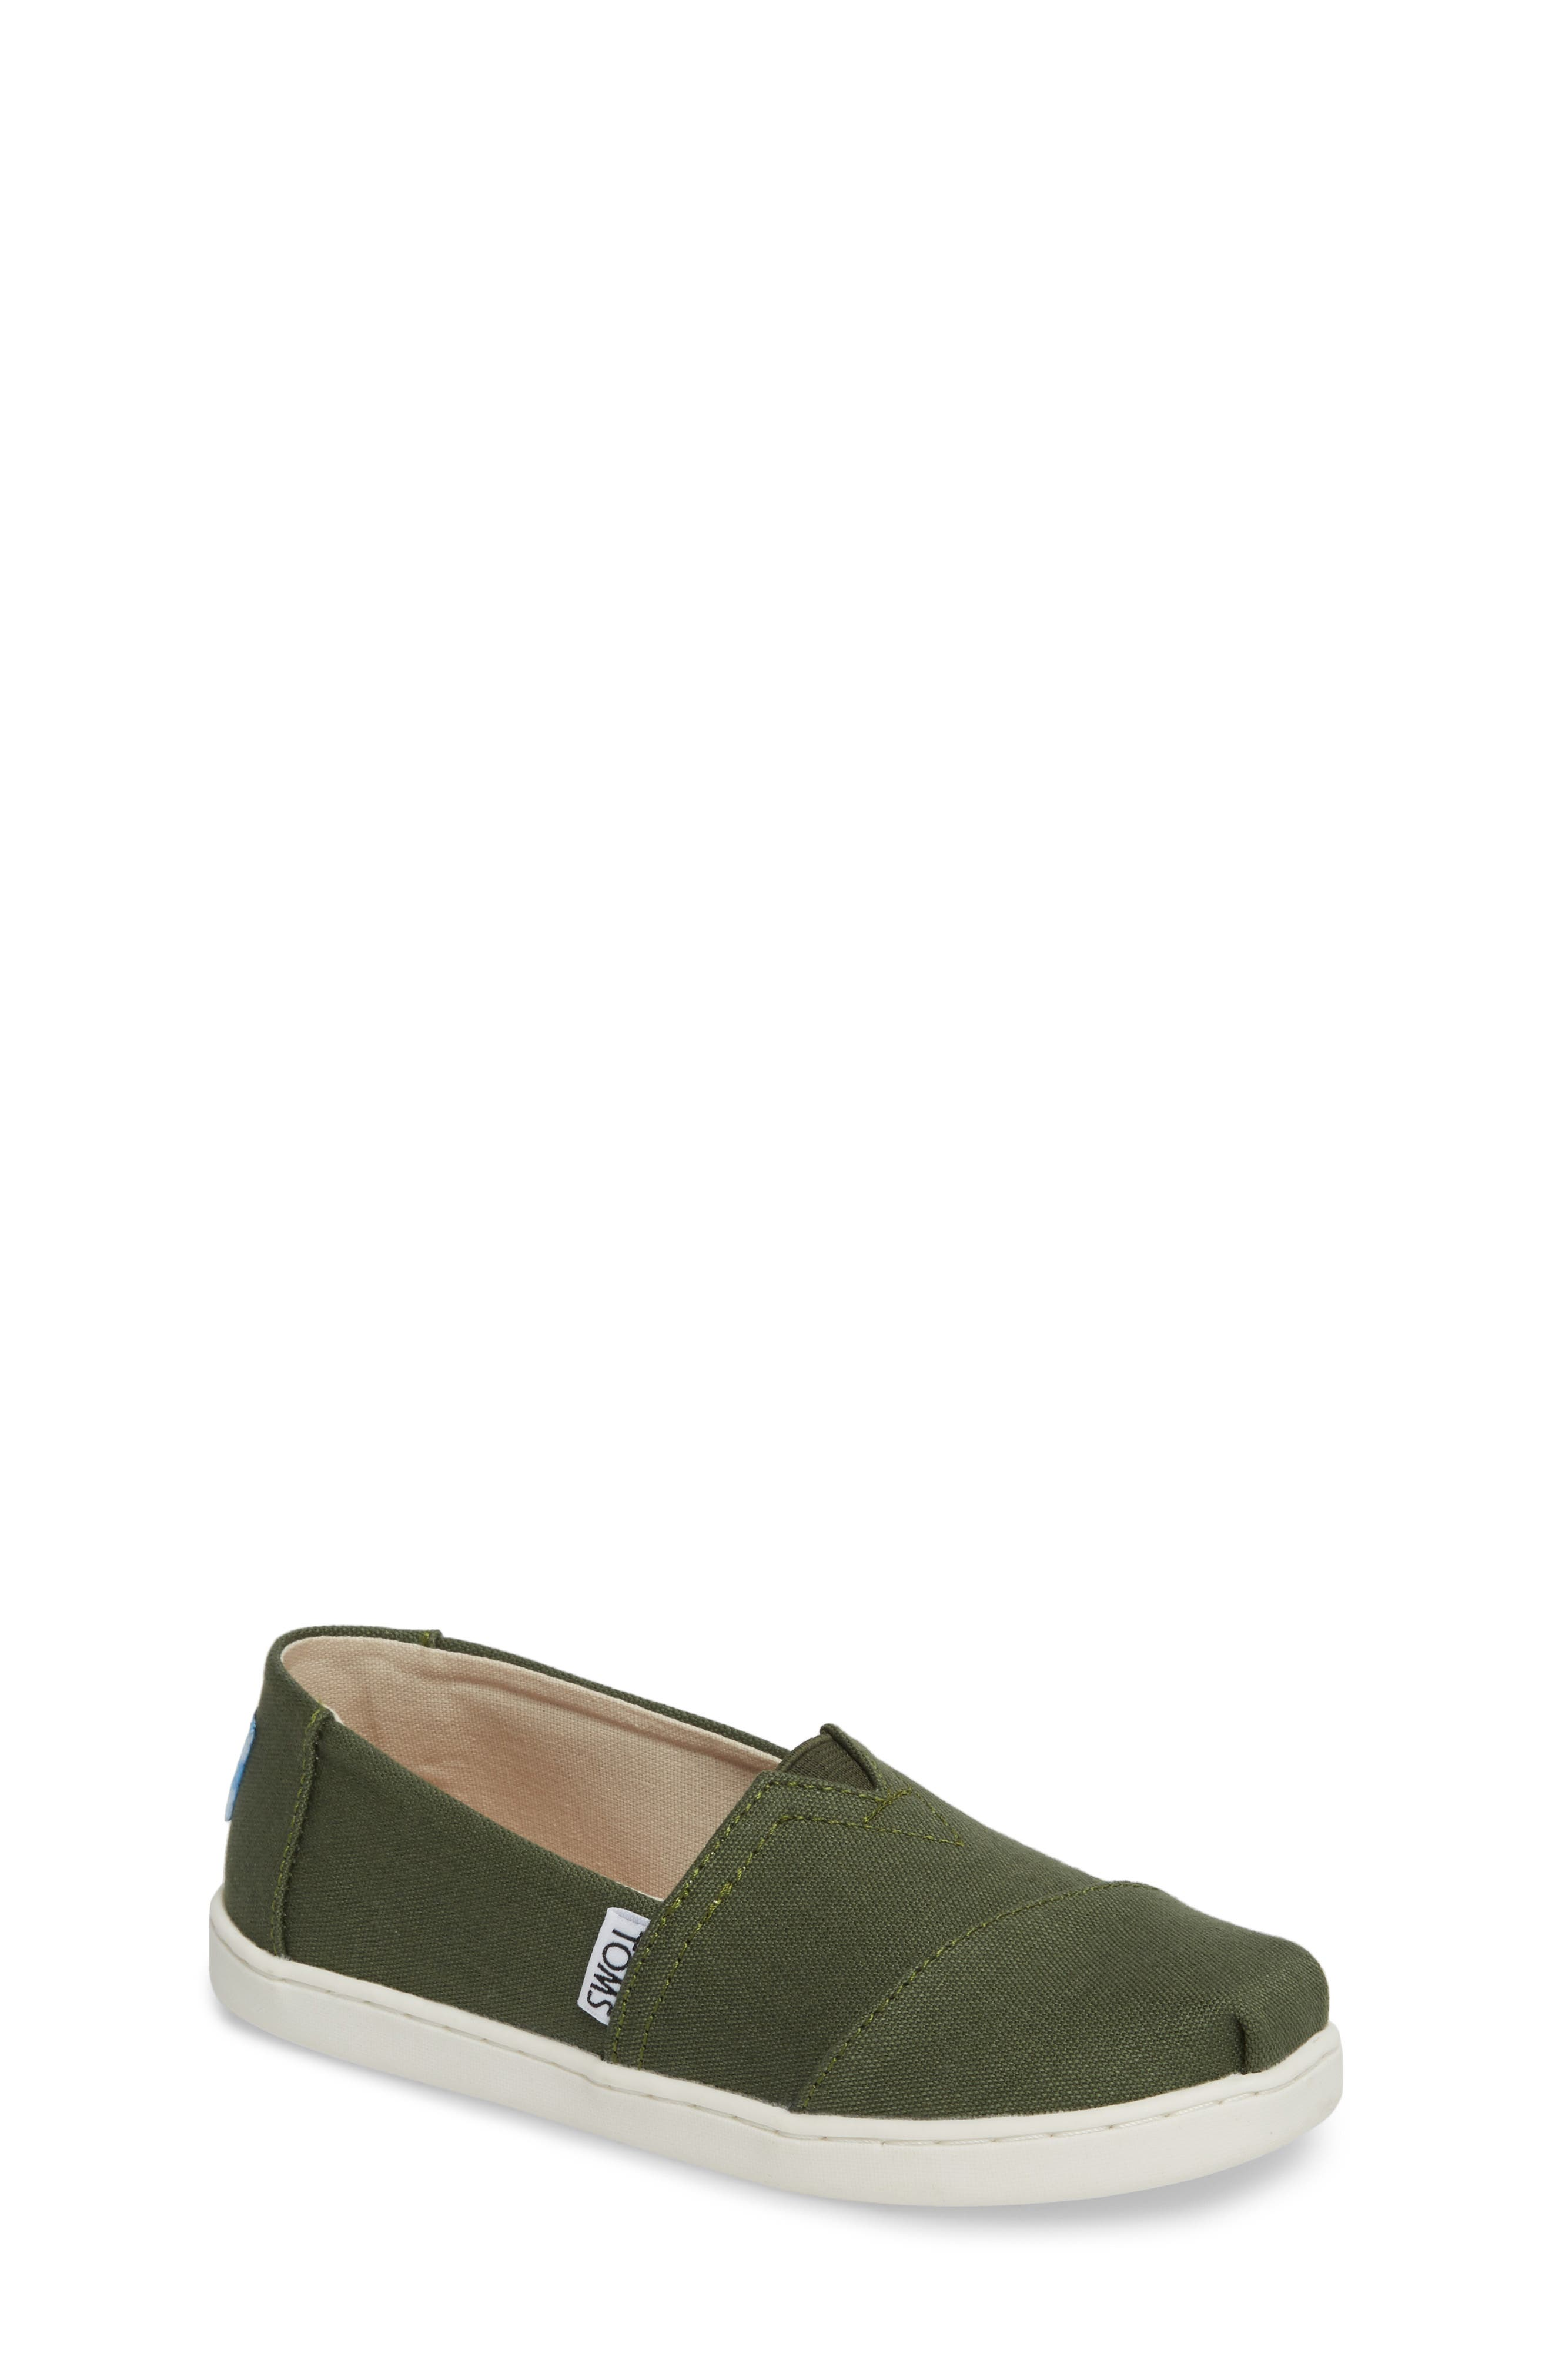 Heritage Canvas Slip-On,                             Main thumbnail 1, color,                             Pine Canvas